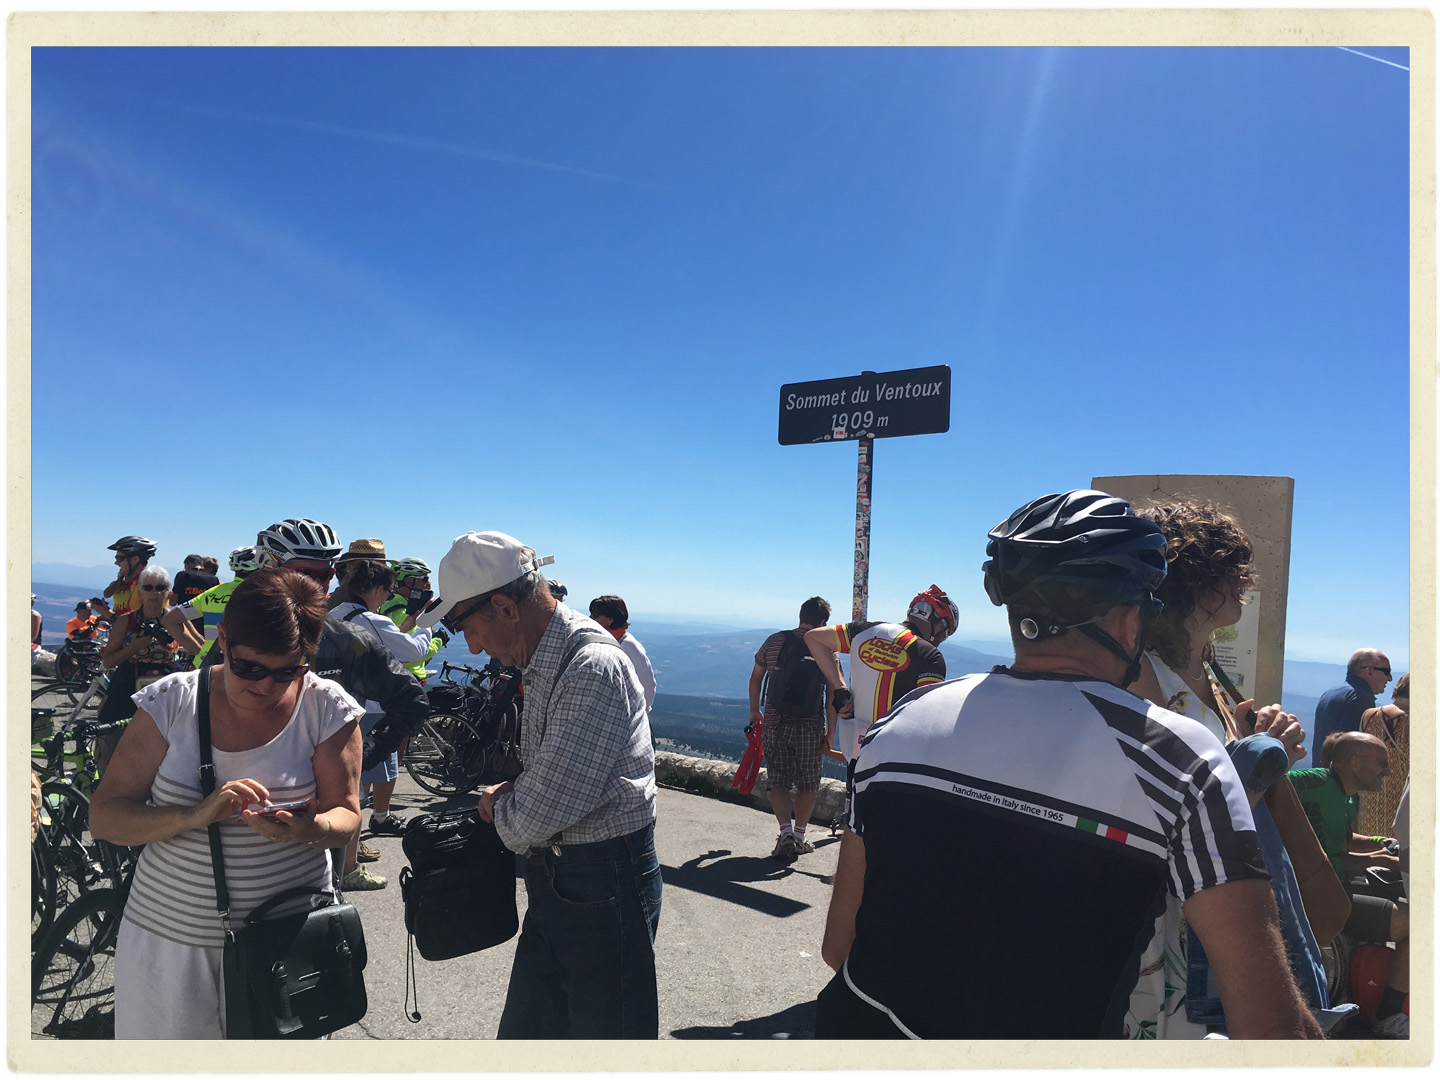 Top of Ventoux on a +33 degree day. Perfection.